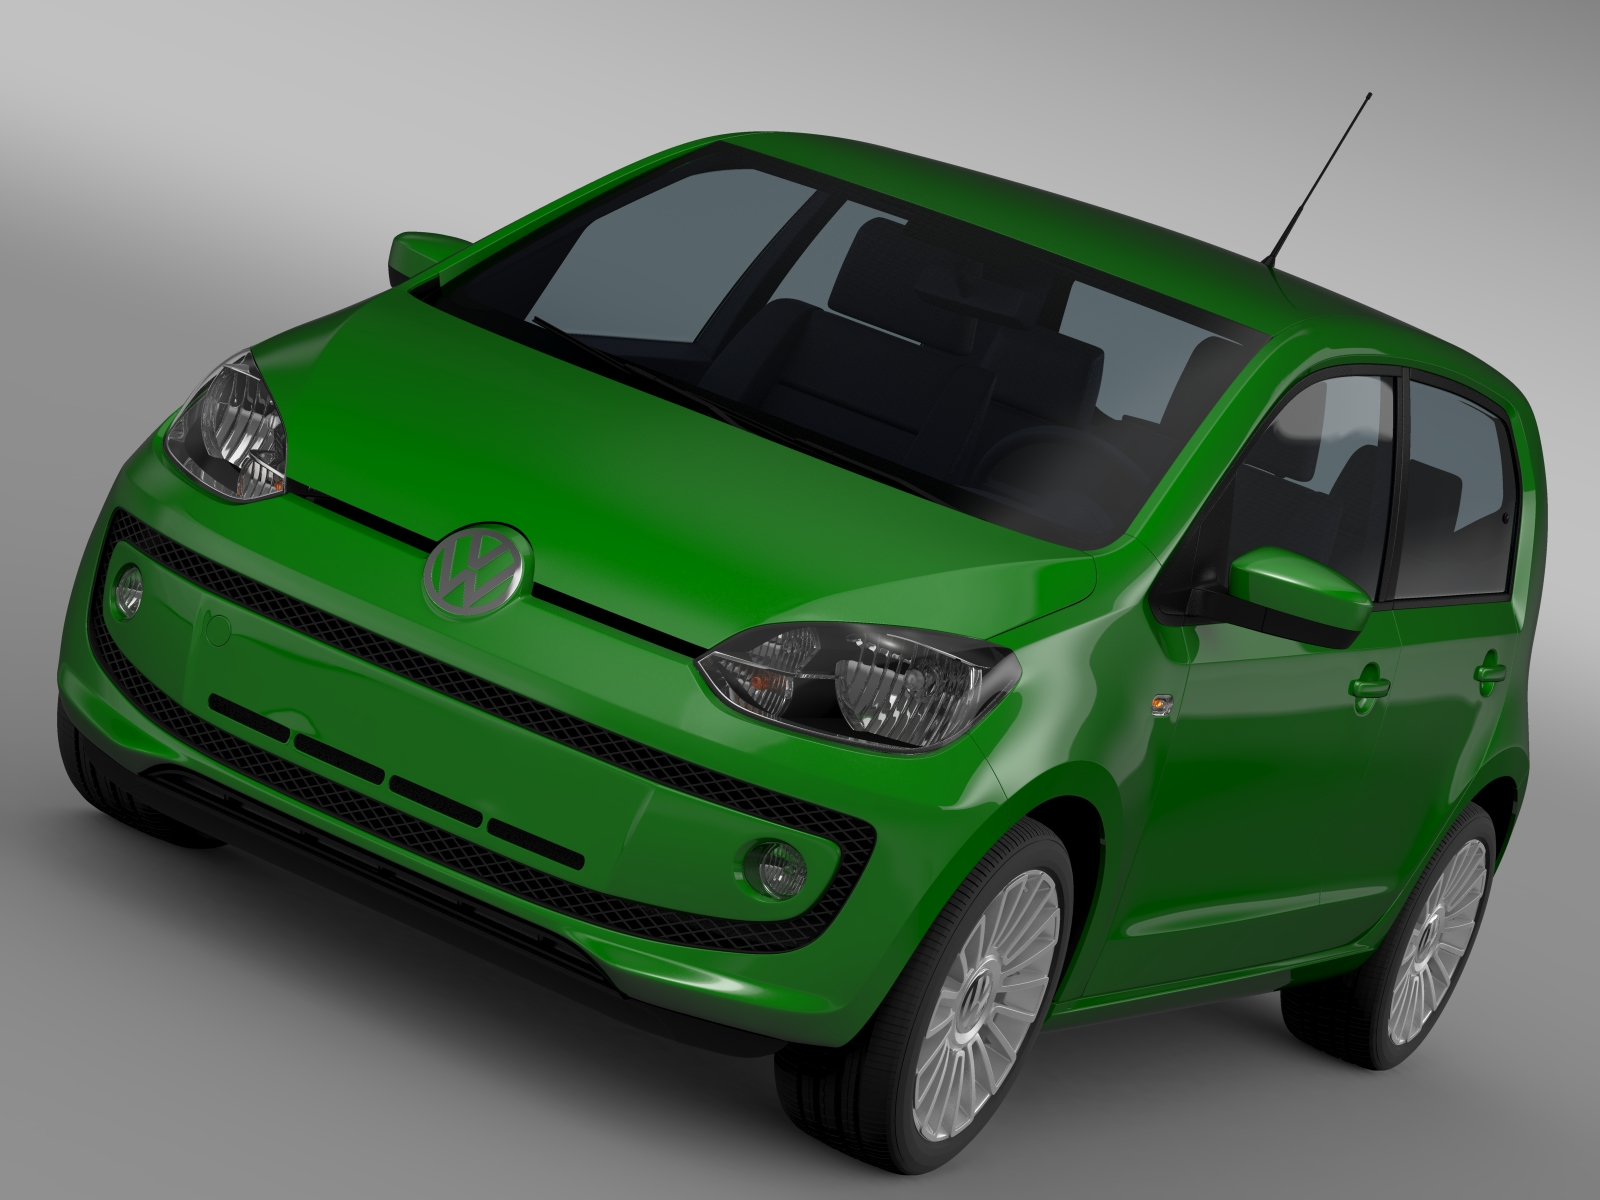 vw eco up 5 door 2013 3d model 3ds max fbx c4d lwo ma mb hrc xsi obj 209109